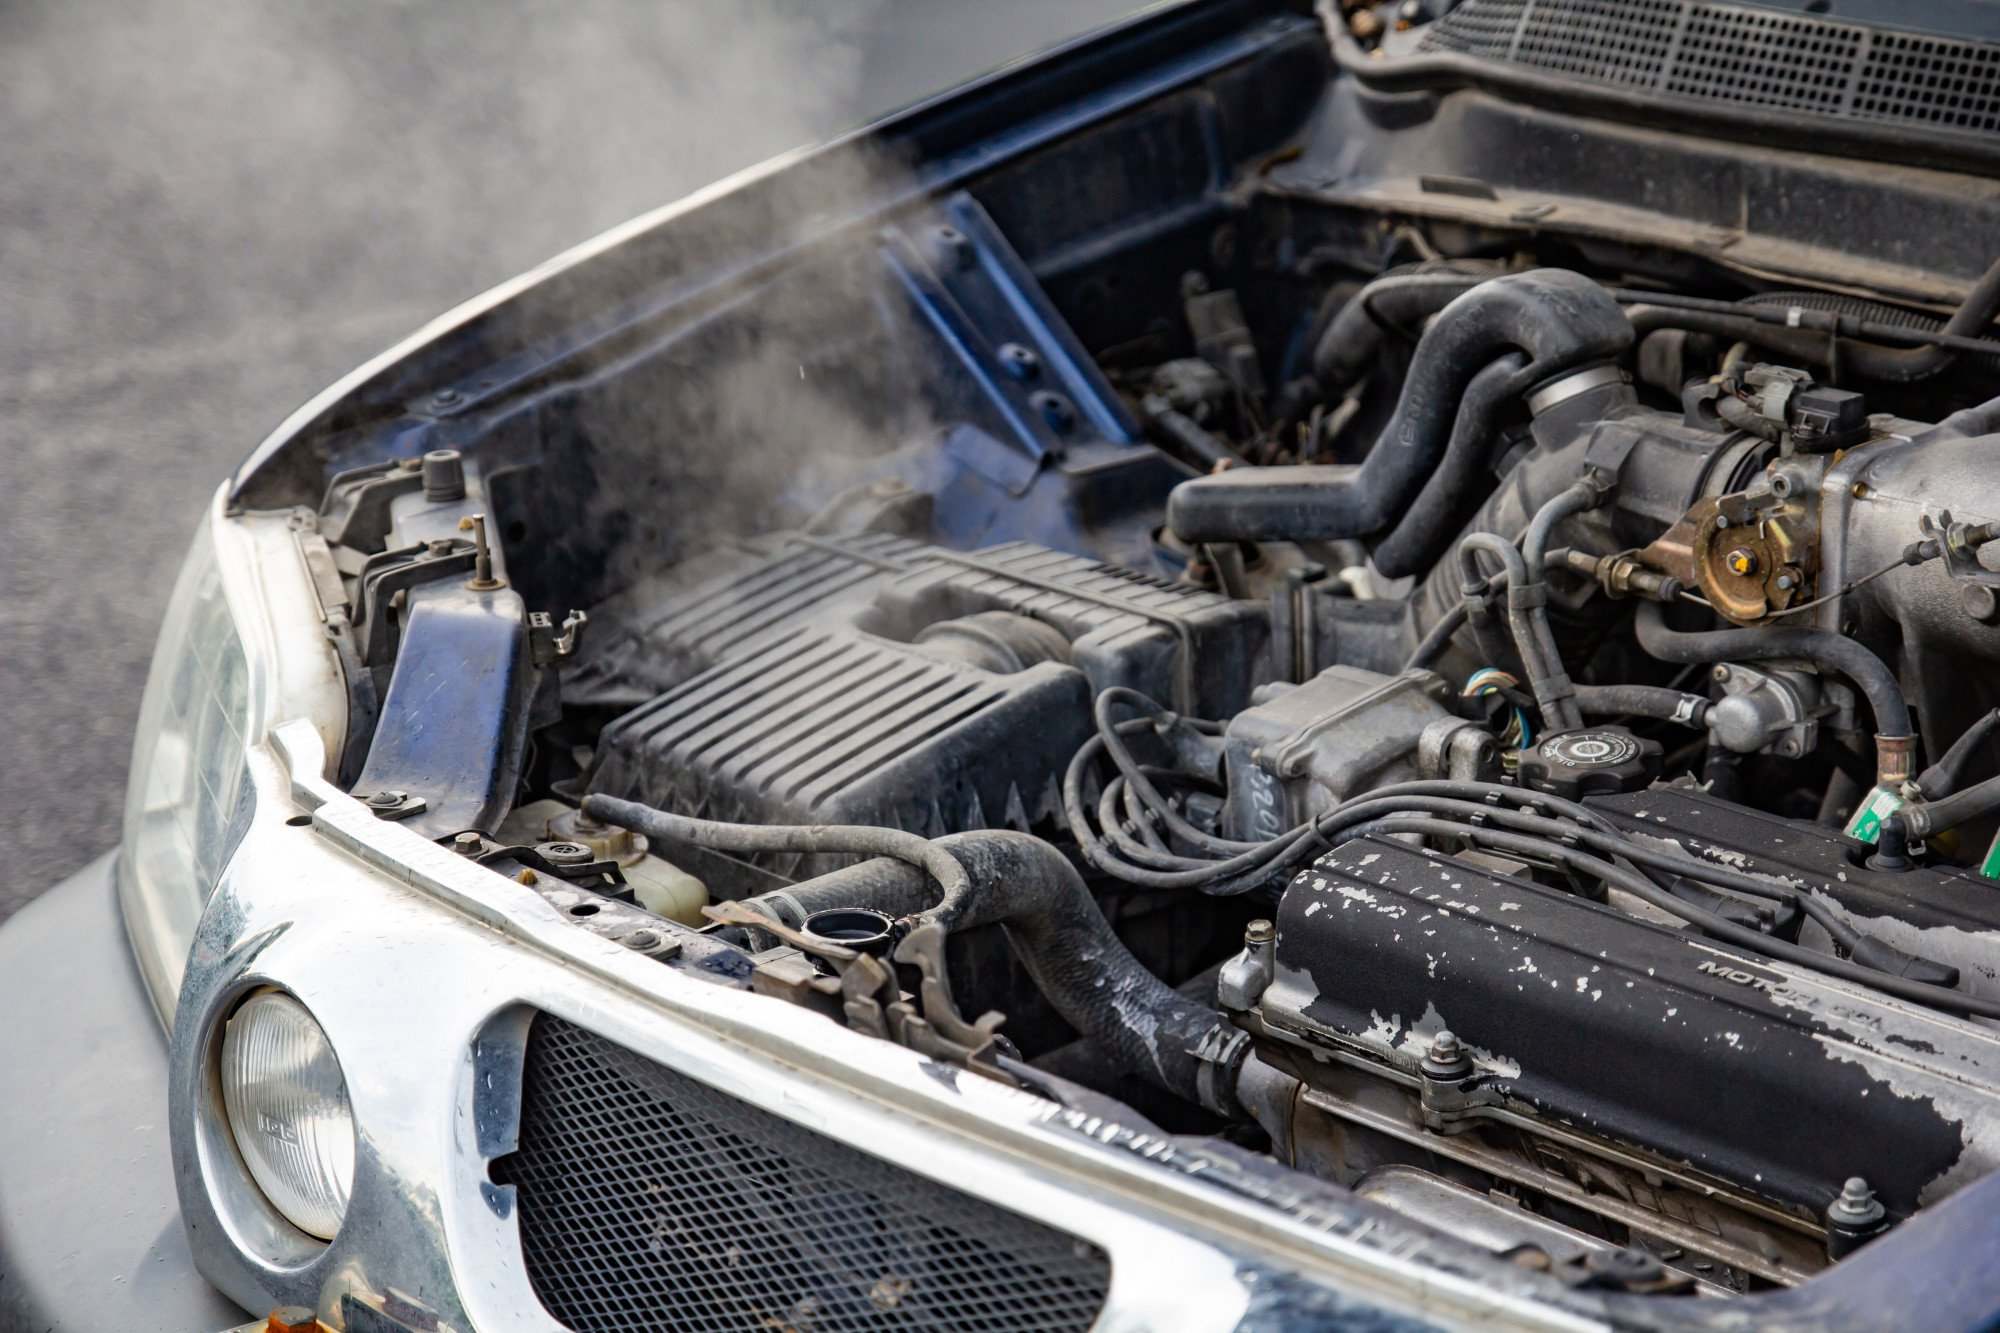 How Do You Know If Your Car Engine is Damaged From Overheating?